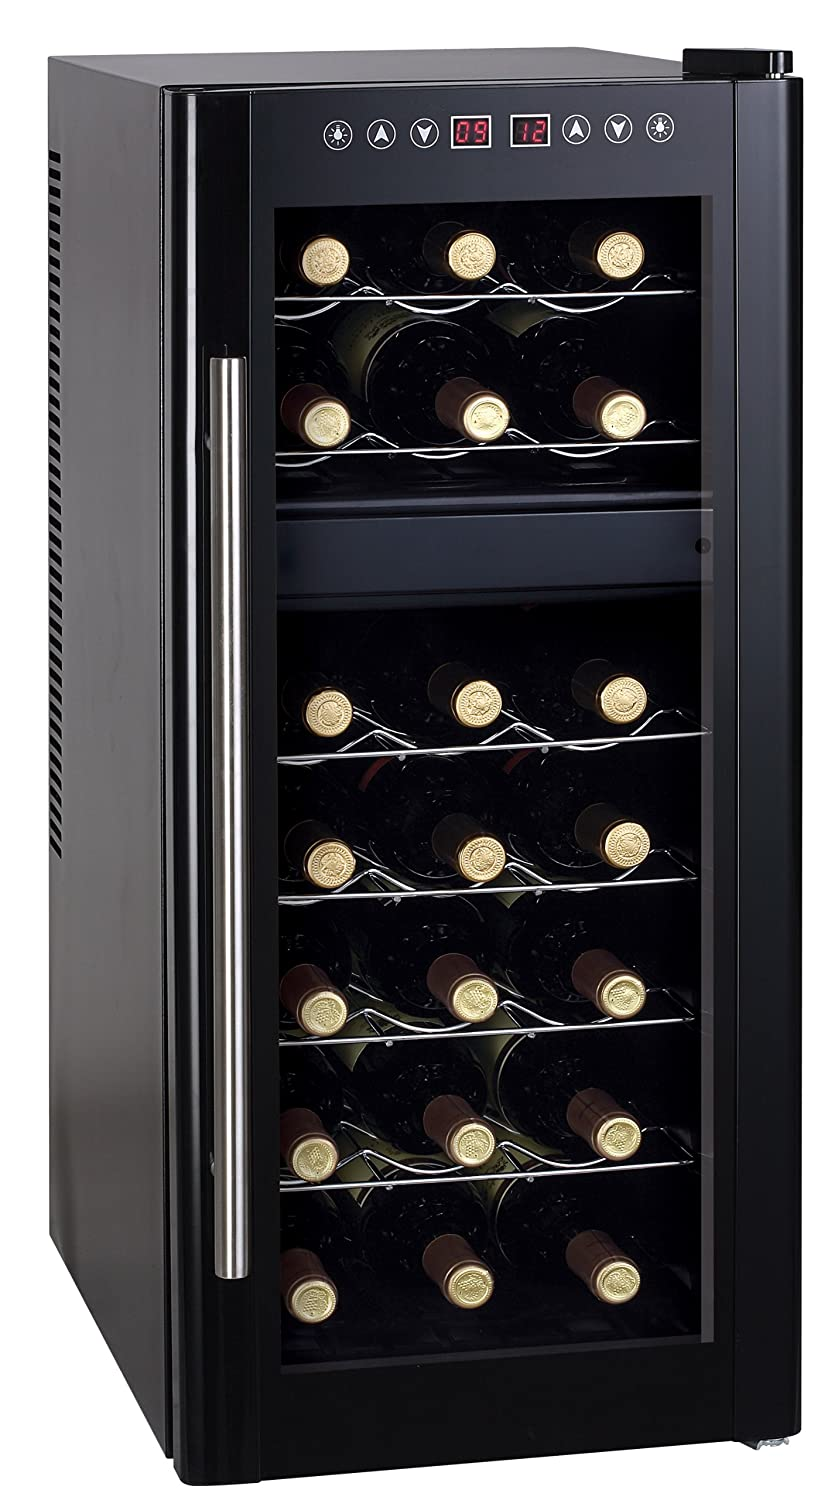 Amazon.com: Spt Dual-Zone Thermo-Electric Wine Cooler with Heating,  21-Bottles: Appliances